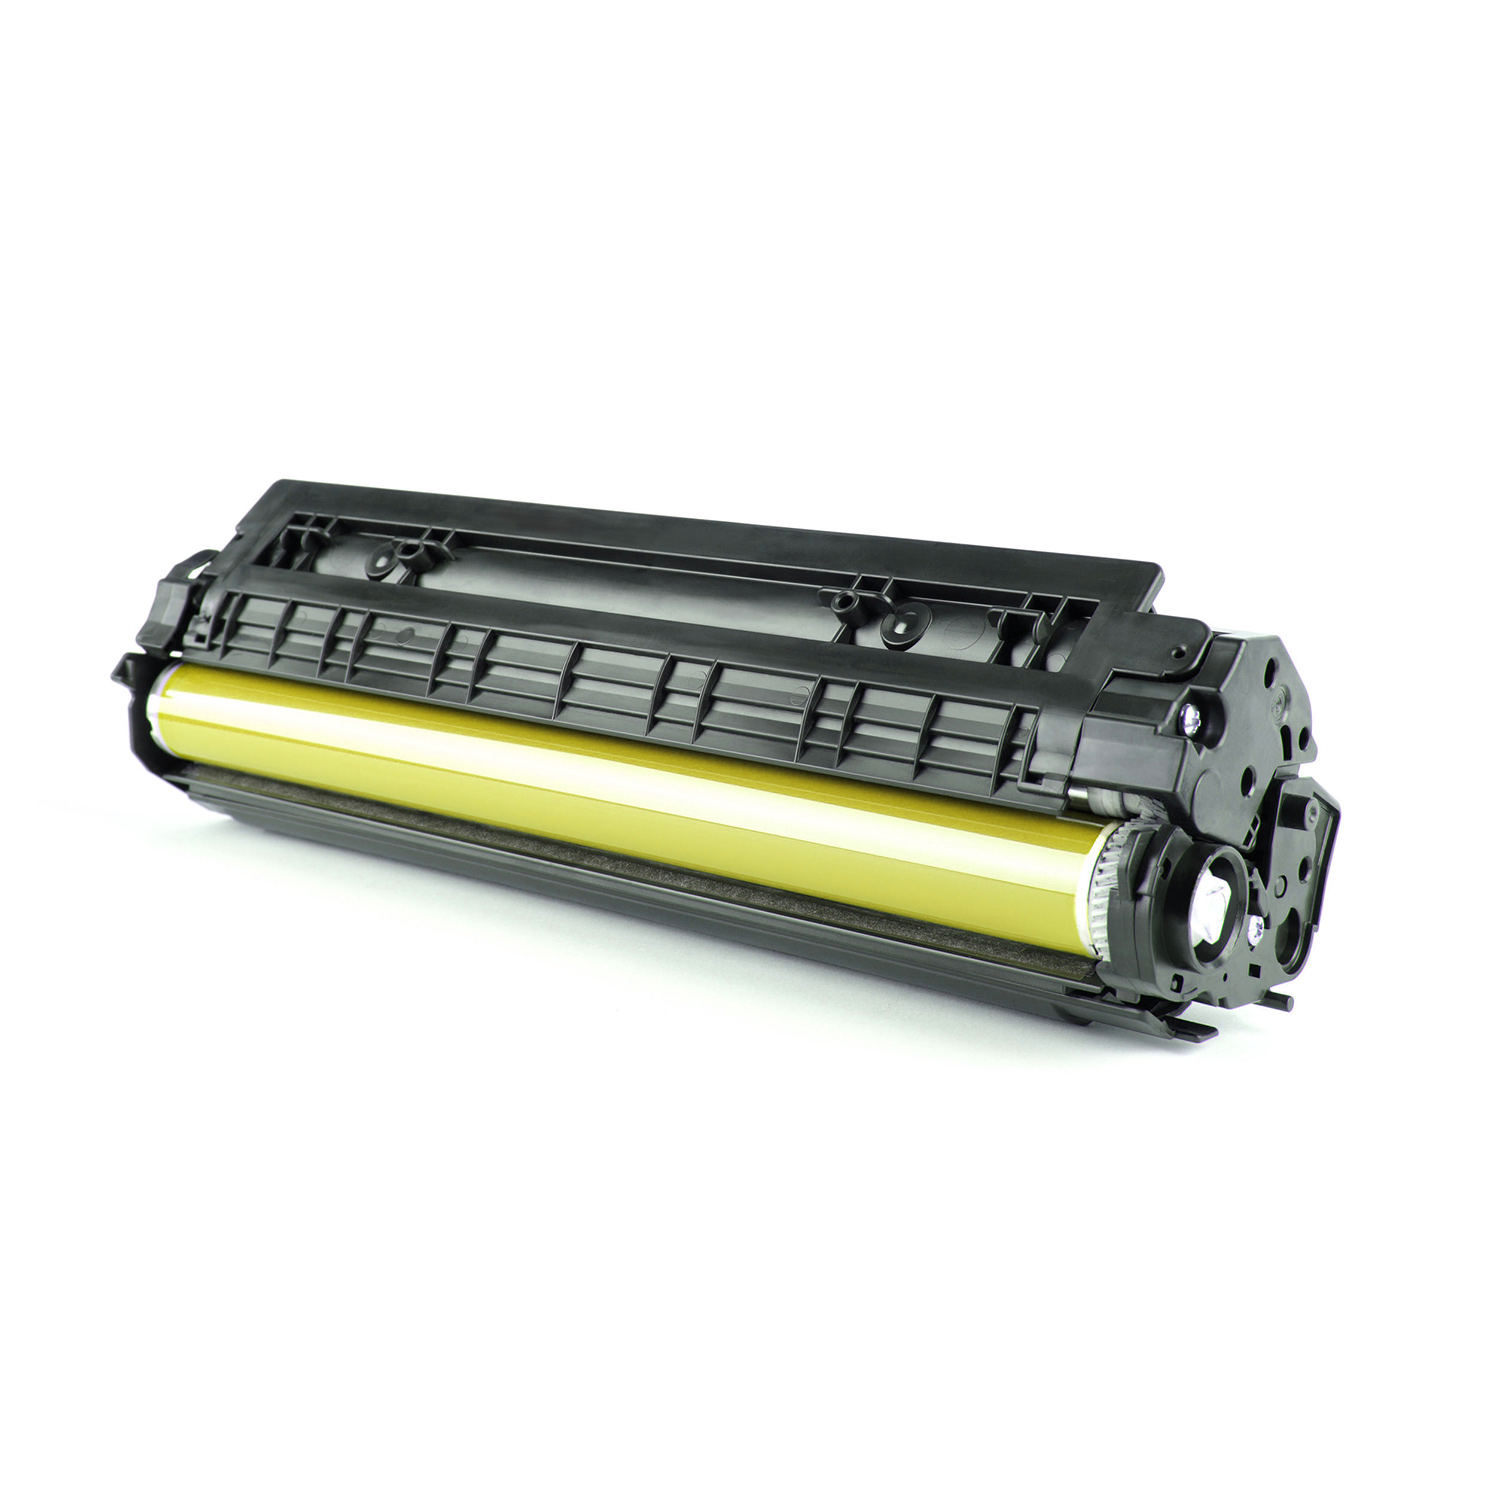 Original Xerox 006R01450 Toner yellow